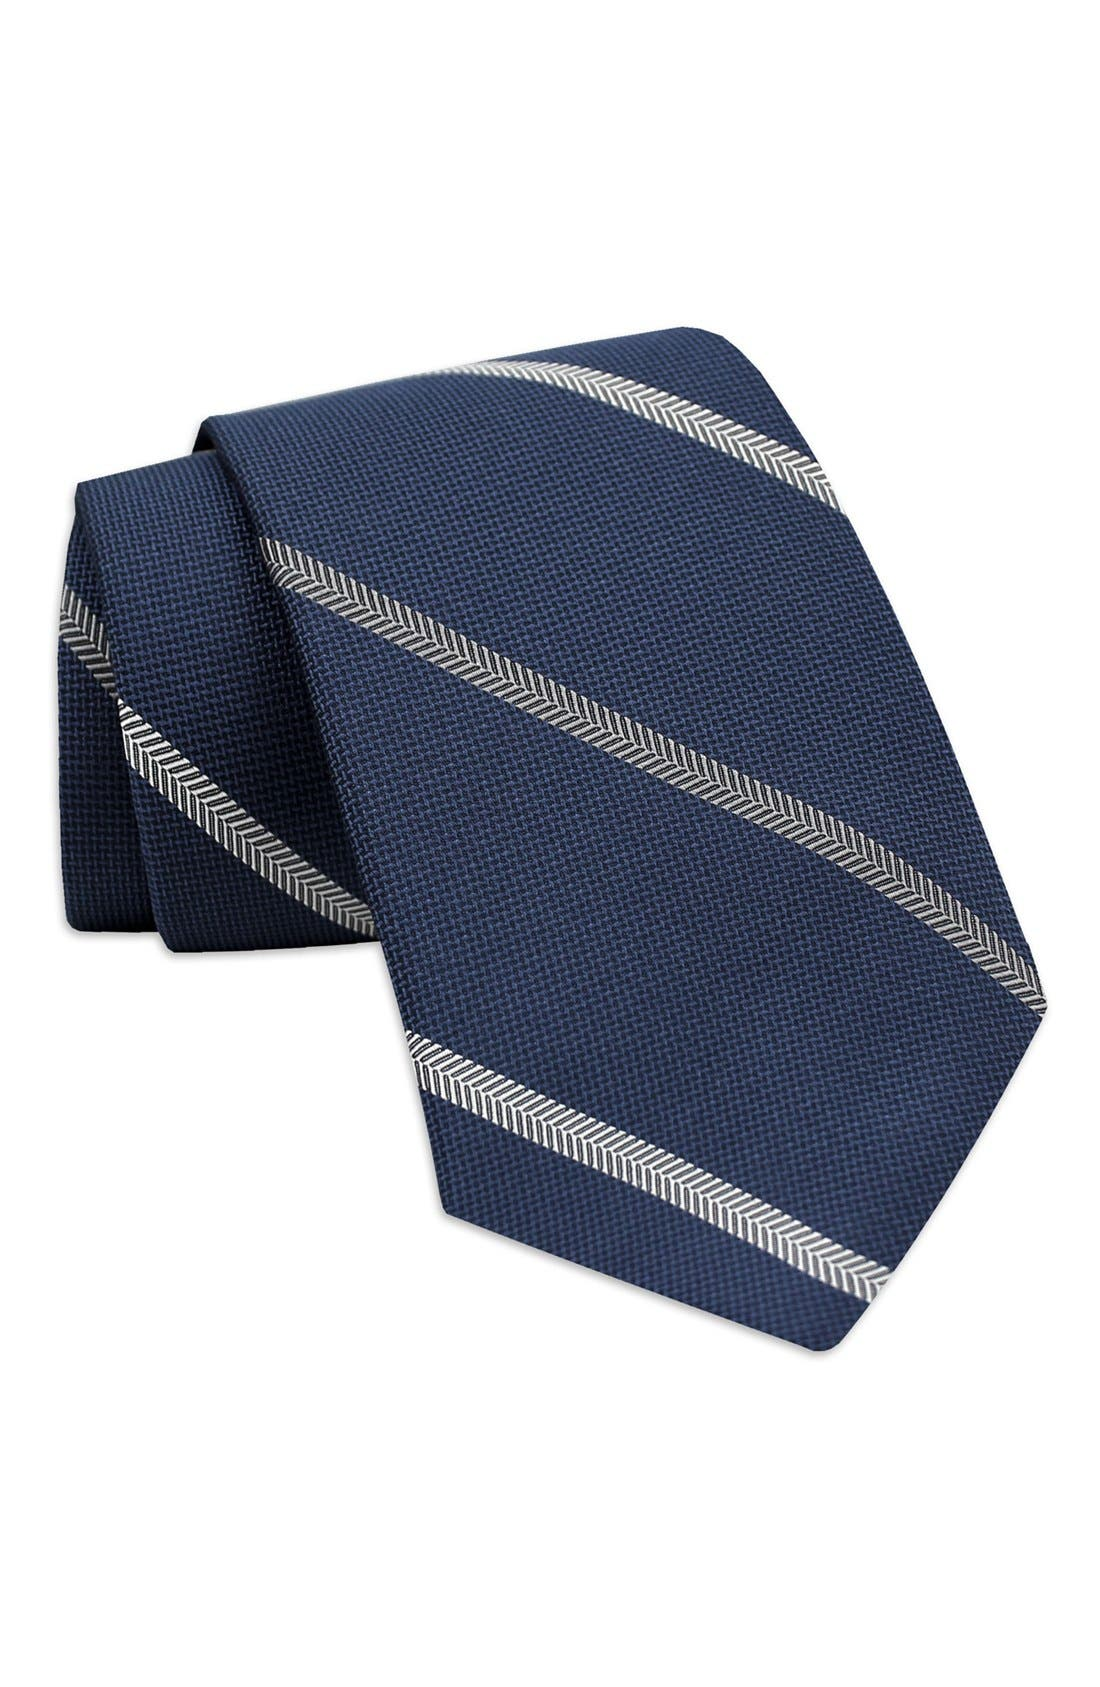 Stripe Woven Silk Tie,                         Main,                         color, 400